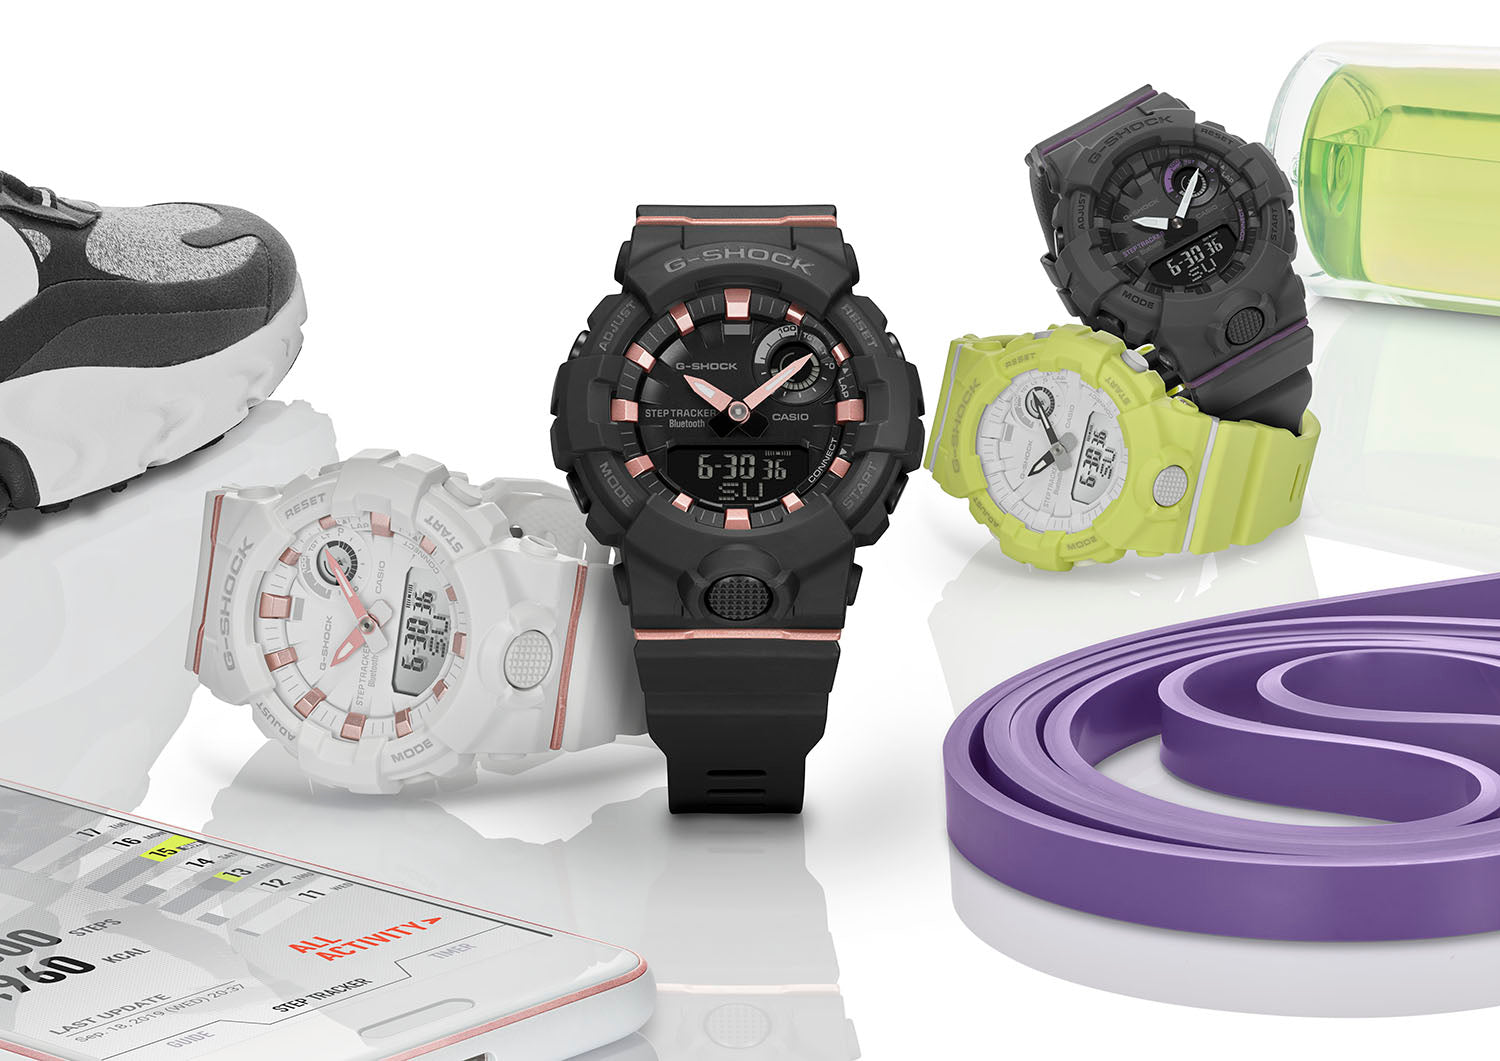 G-SHOCK WOMEN UNVEILS FIRST COLLECTION OF CONNECTED S-SERIES WATCHES